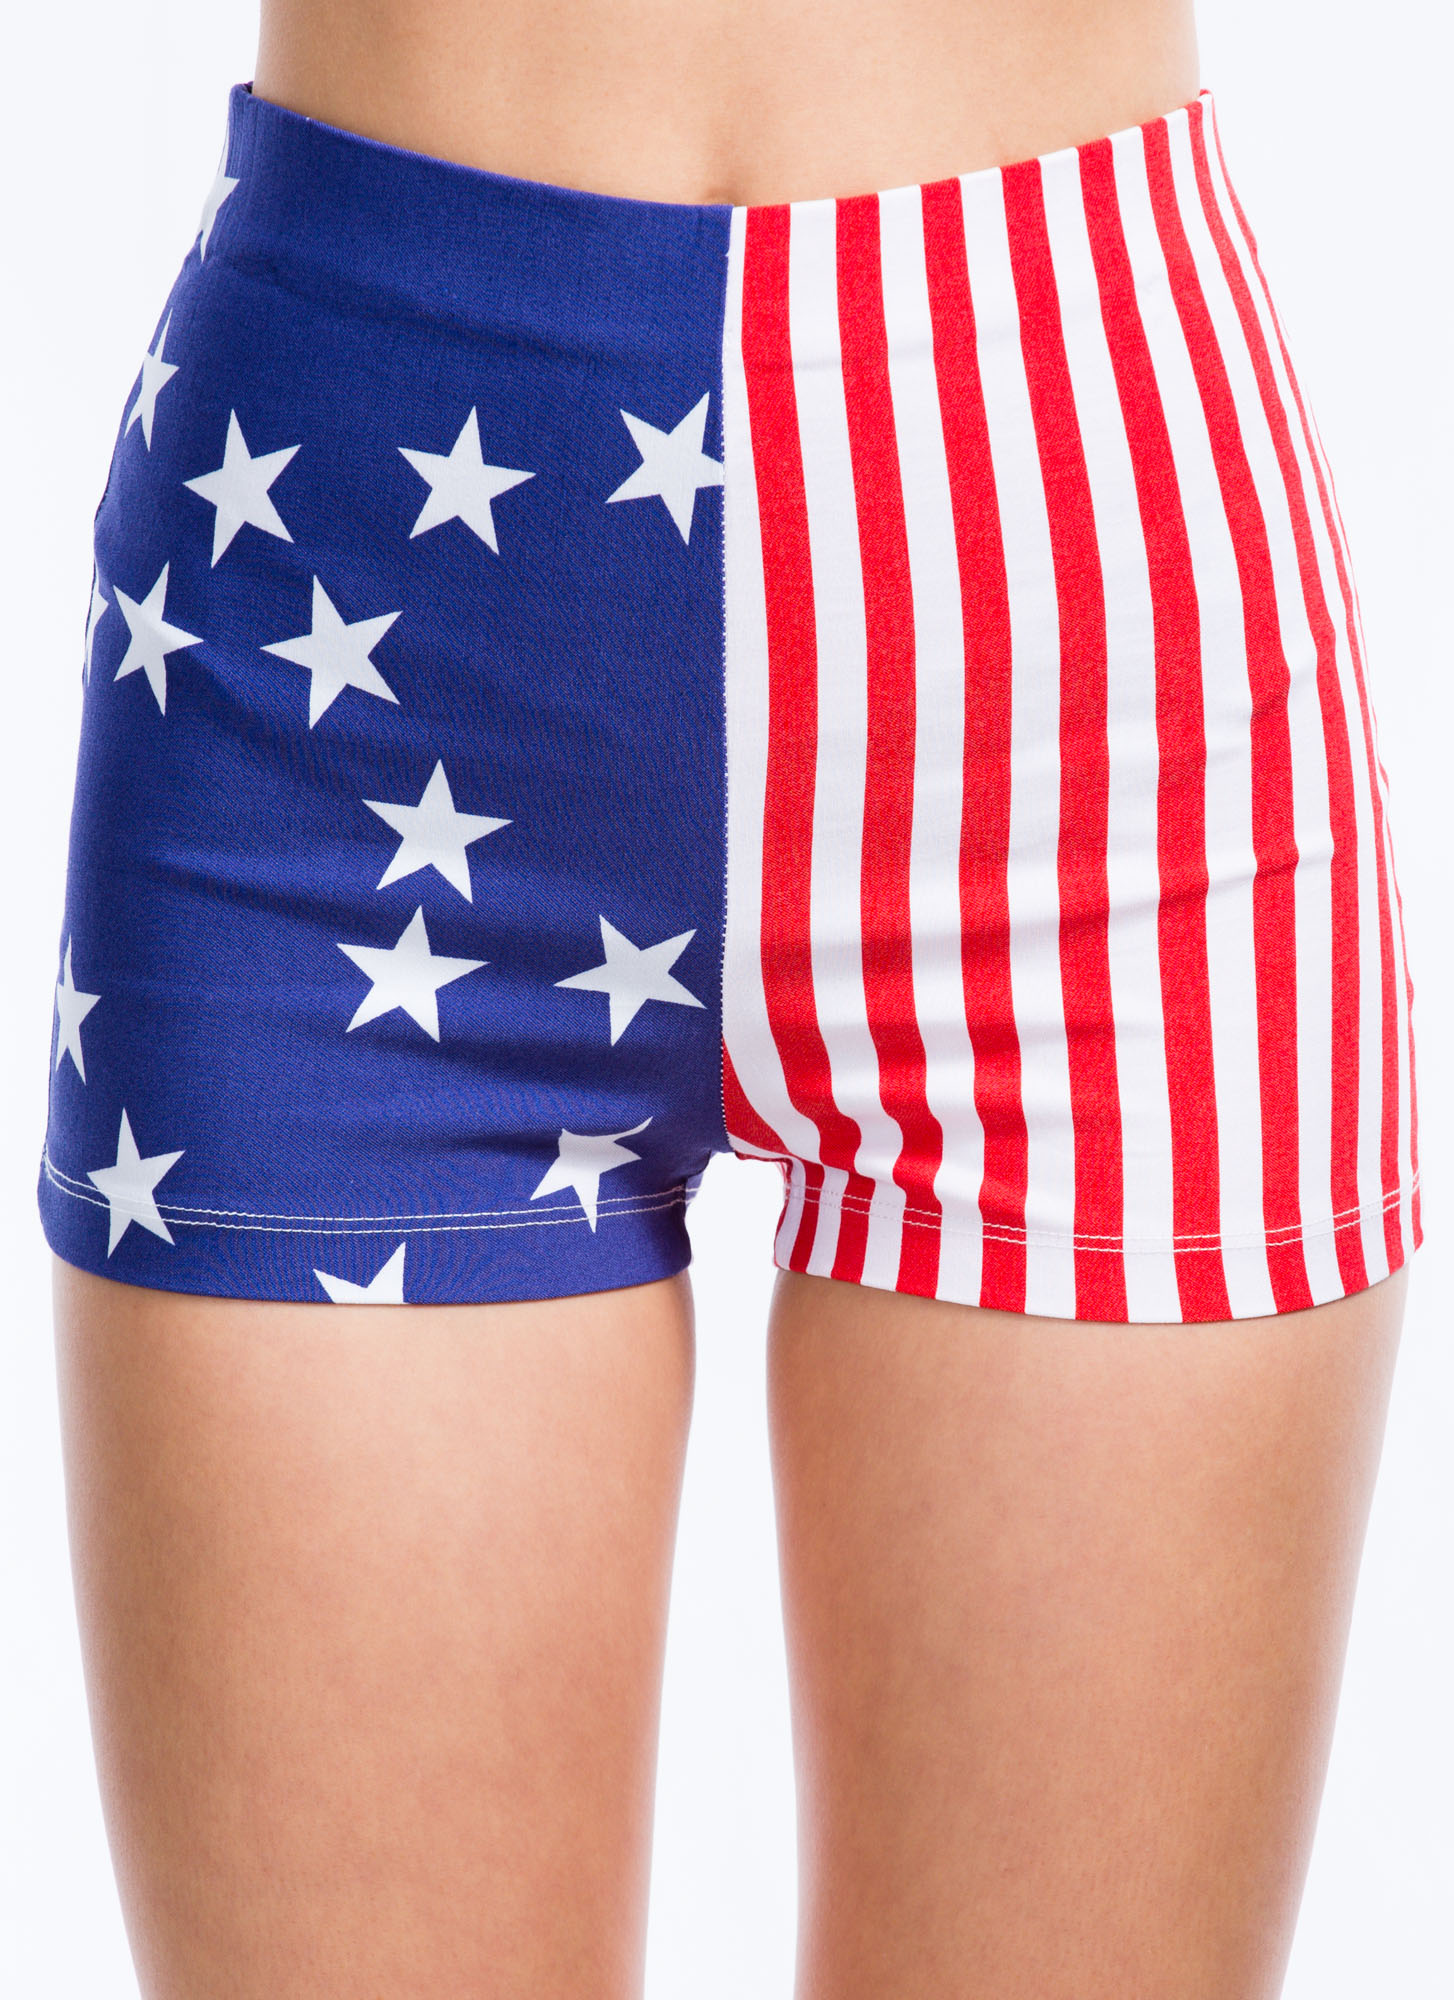 Flagged Down Stars And Stripes Shorts REDBLUE